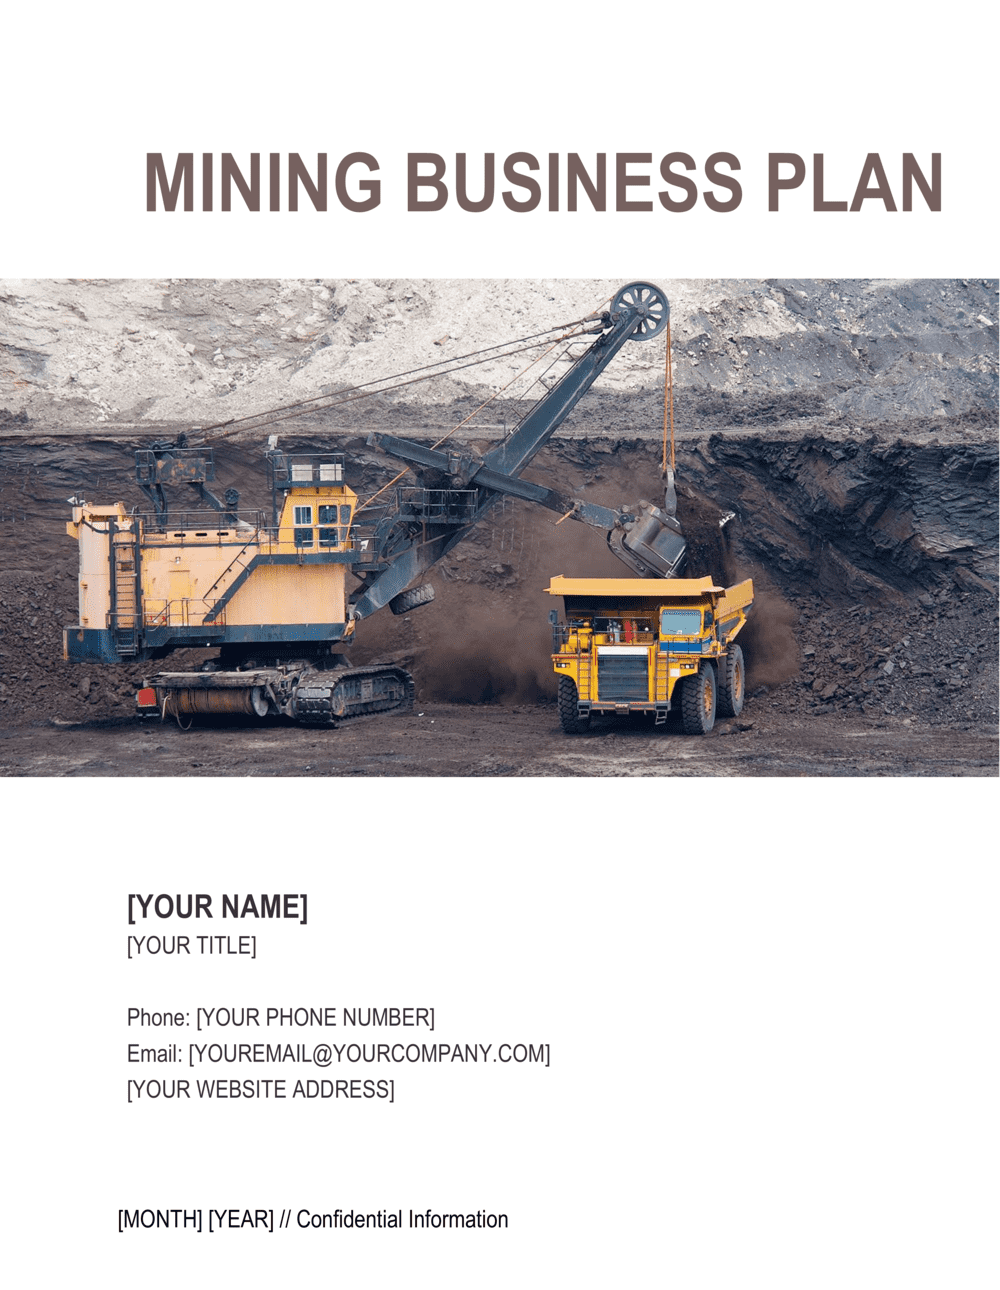 Business-in-a-Box's Mining Business Plan Template